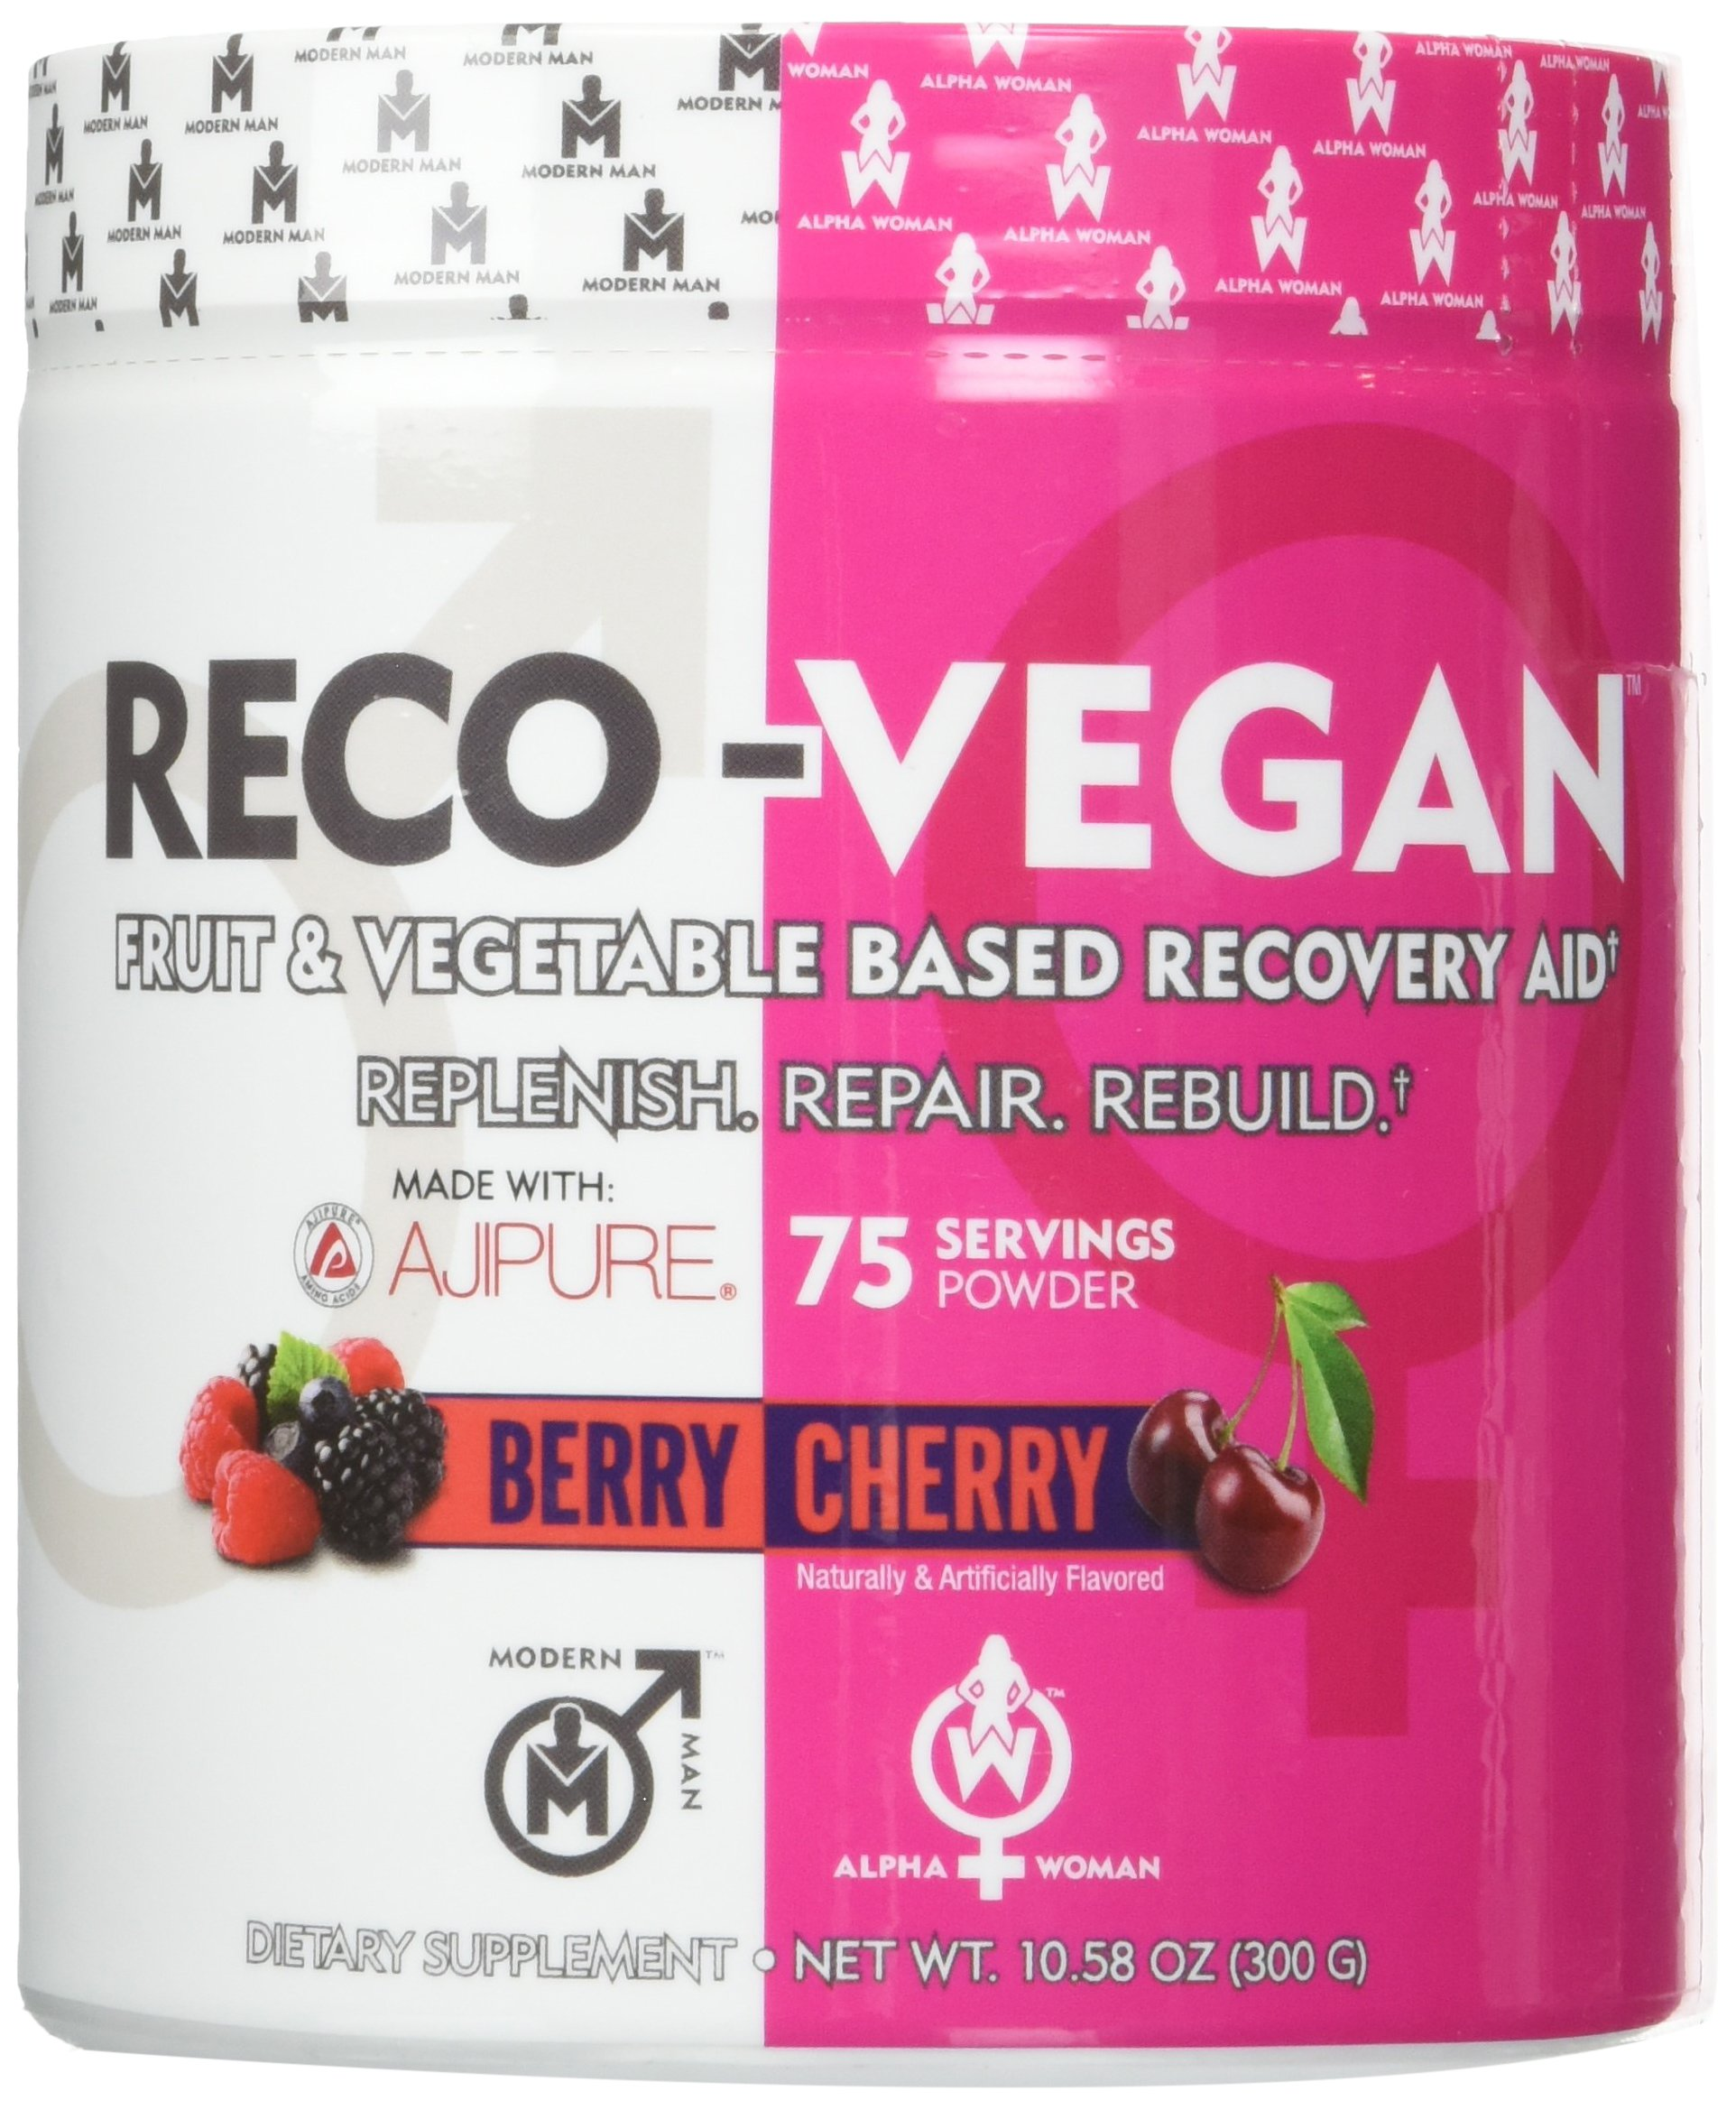 RECO VEGAN - Natural Tart Cherry L-Glutamine Antioxidant Supplement, Post Workout Antioxidants - Daily Metabolism Booster, Joint Pain Relief and Recovery, Berry Cherry, 75 Servings